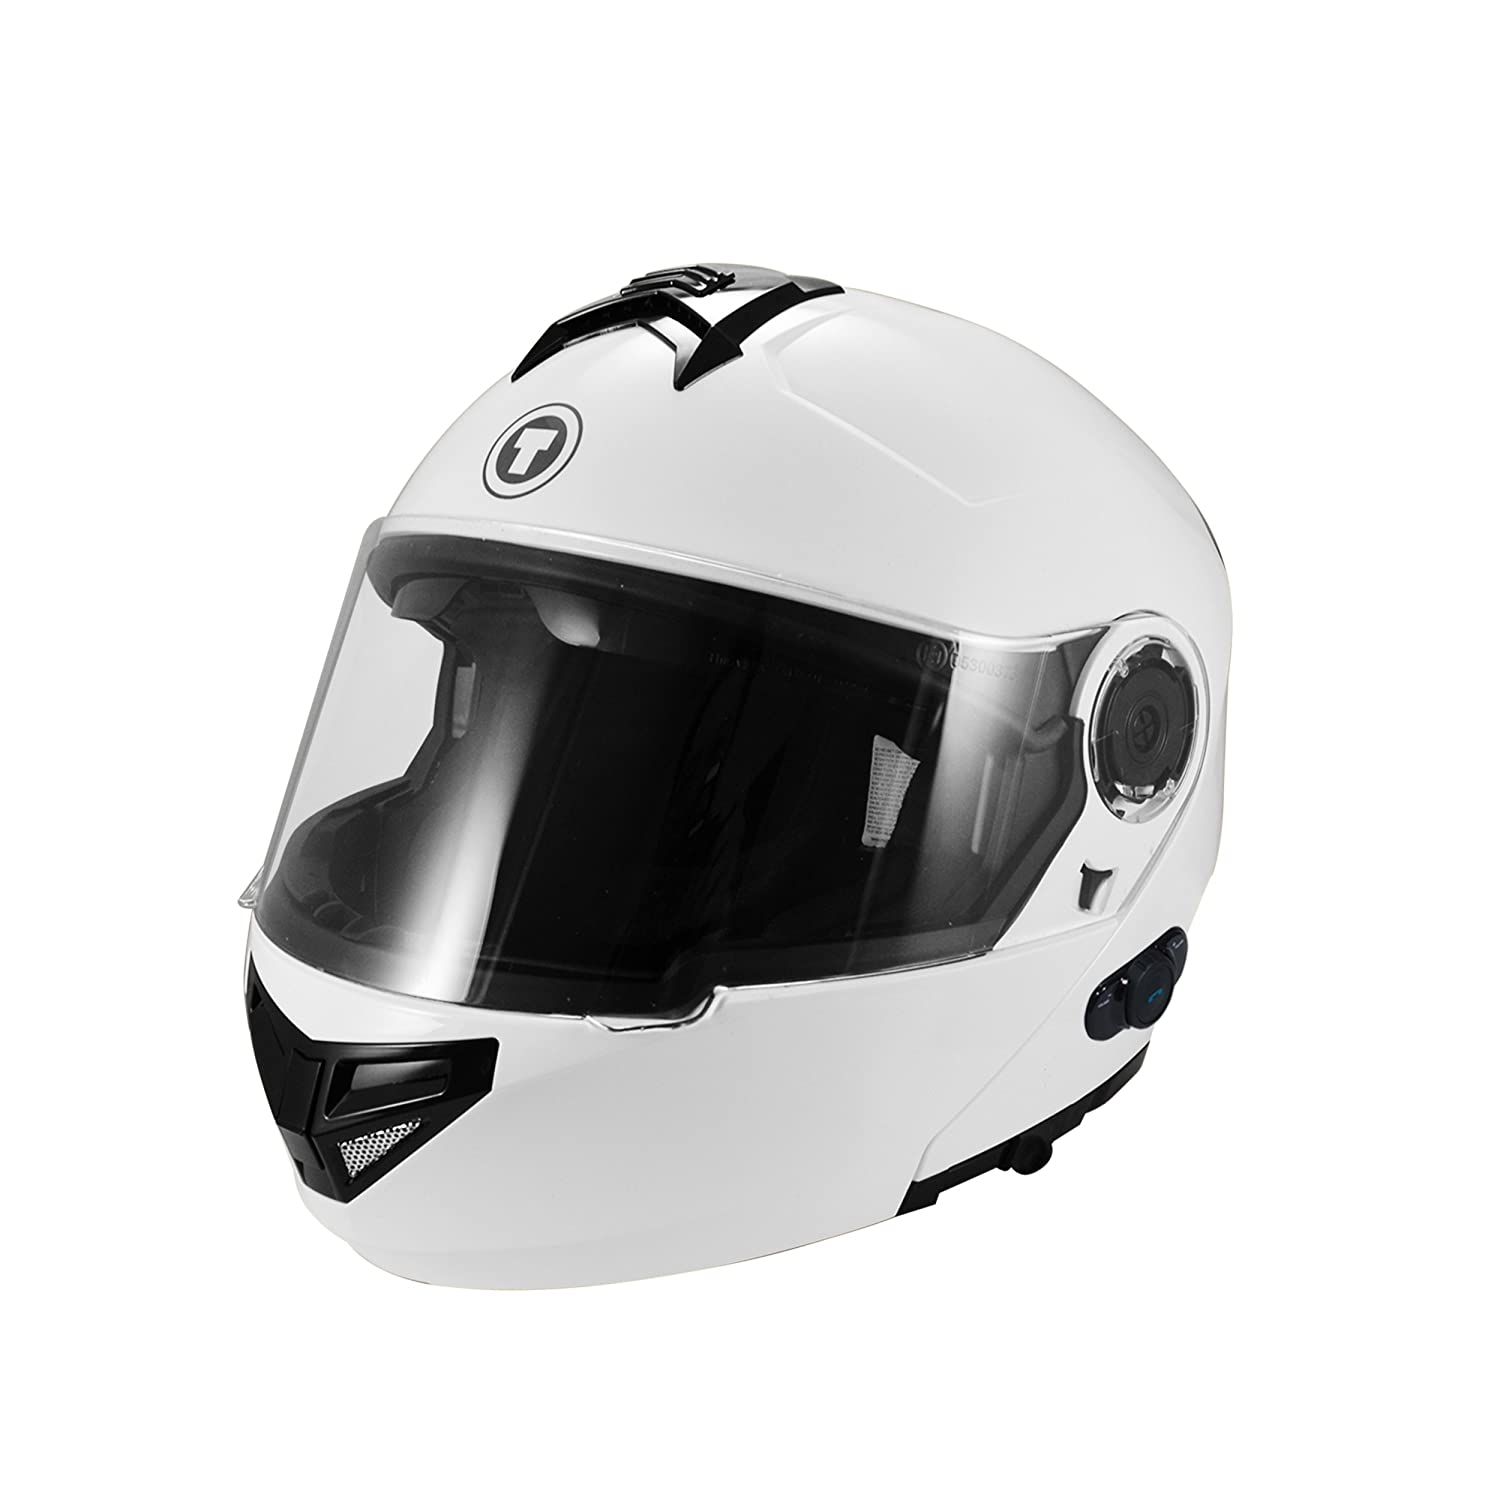 Best Bluetooth Motorcycle Helmet reviews